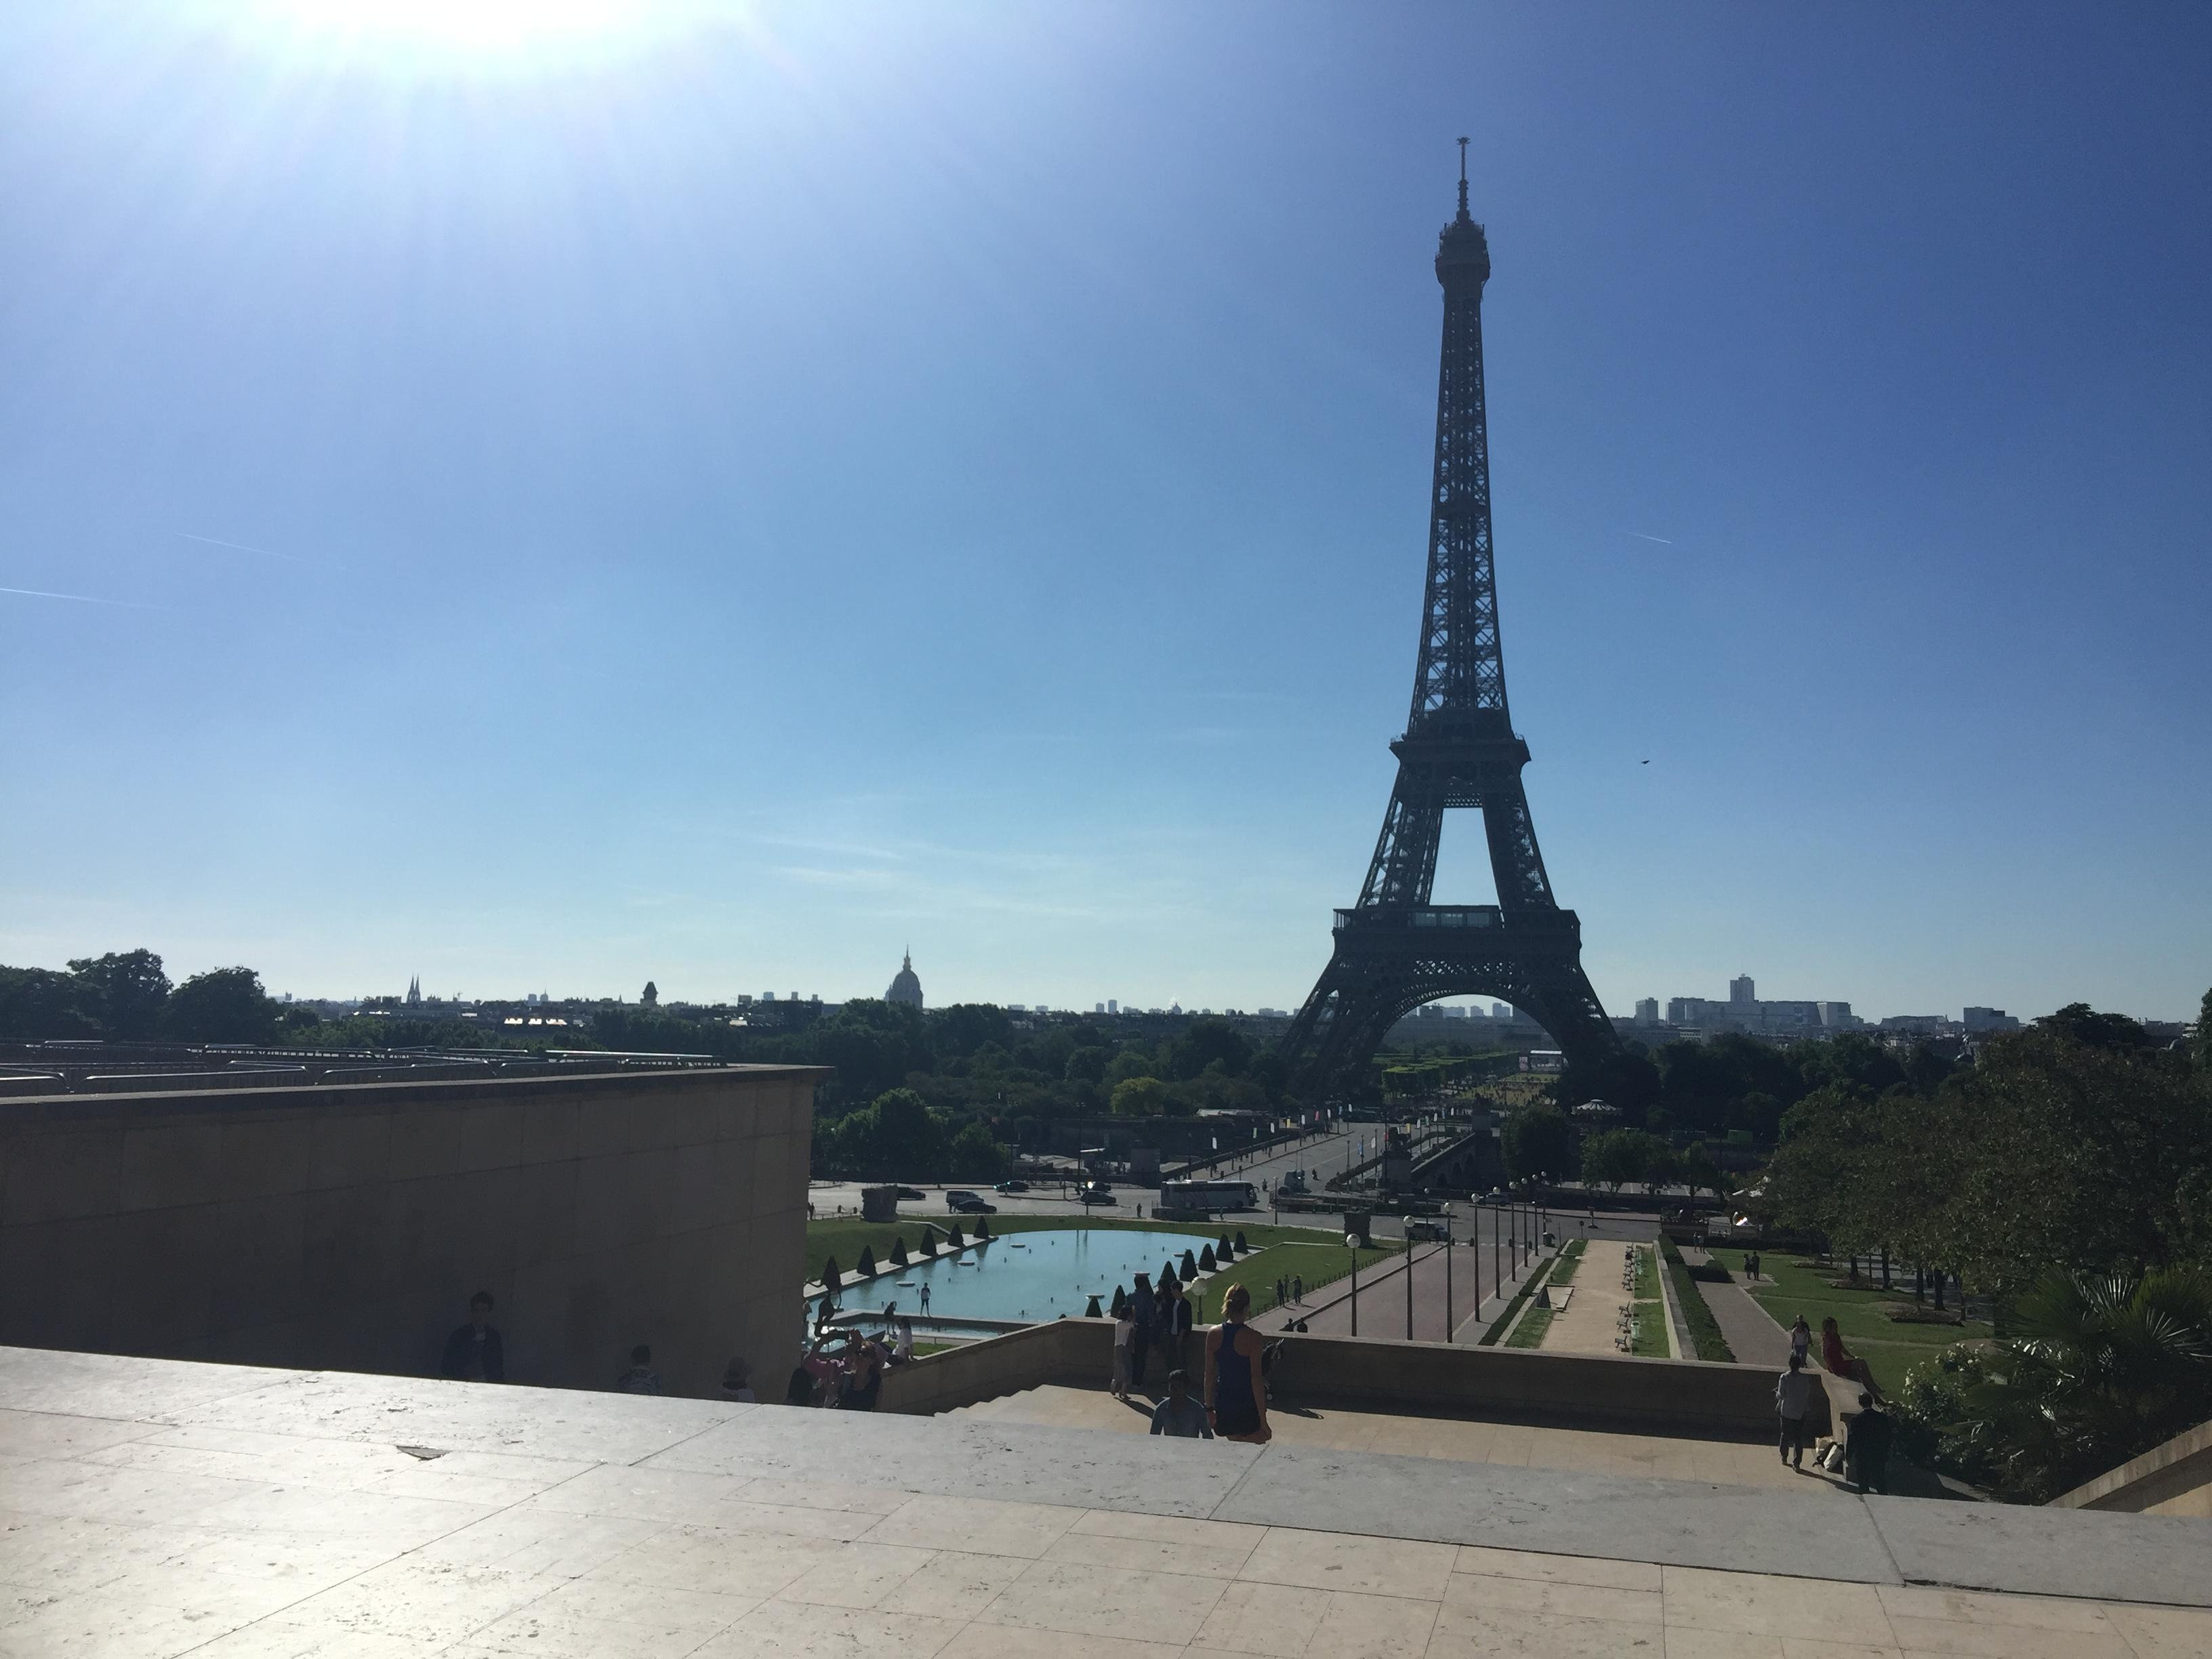 The Eiffel Tower from the Pallais de Chaillot